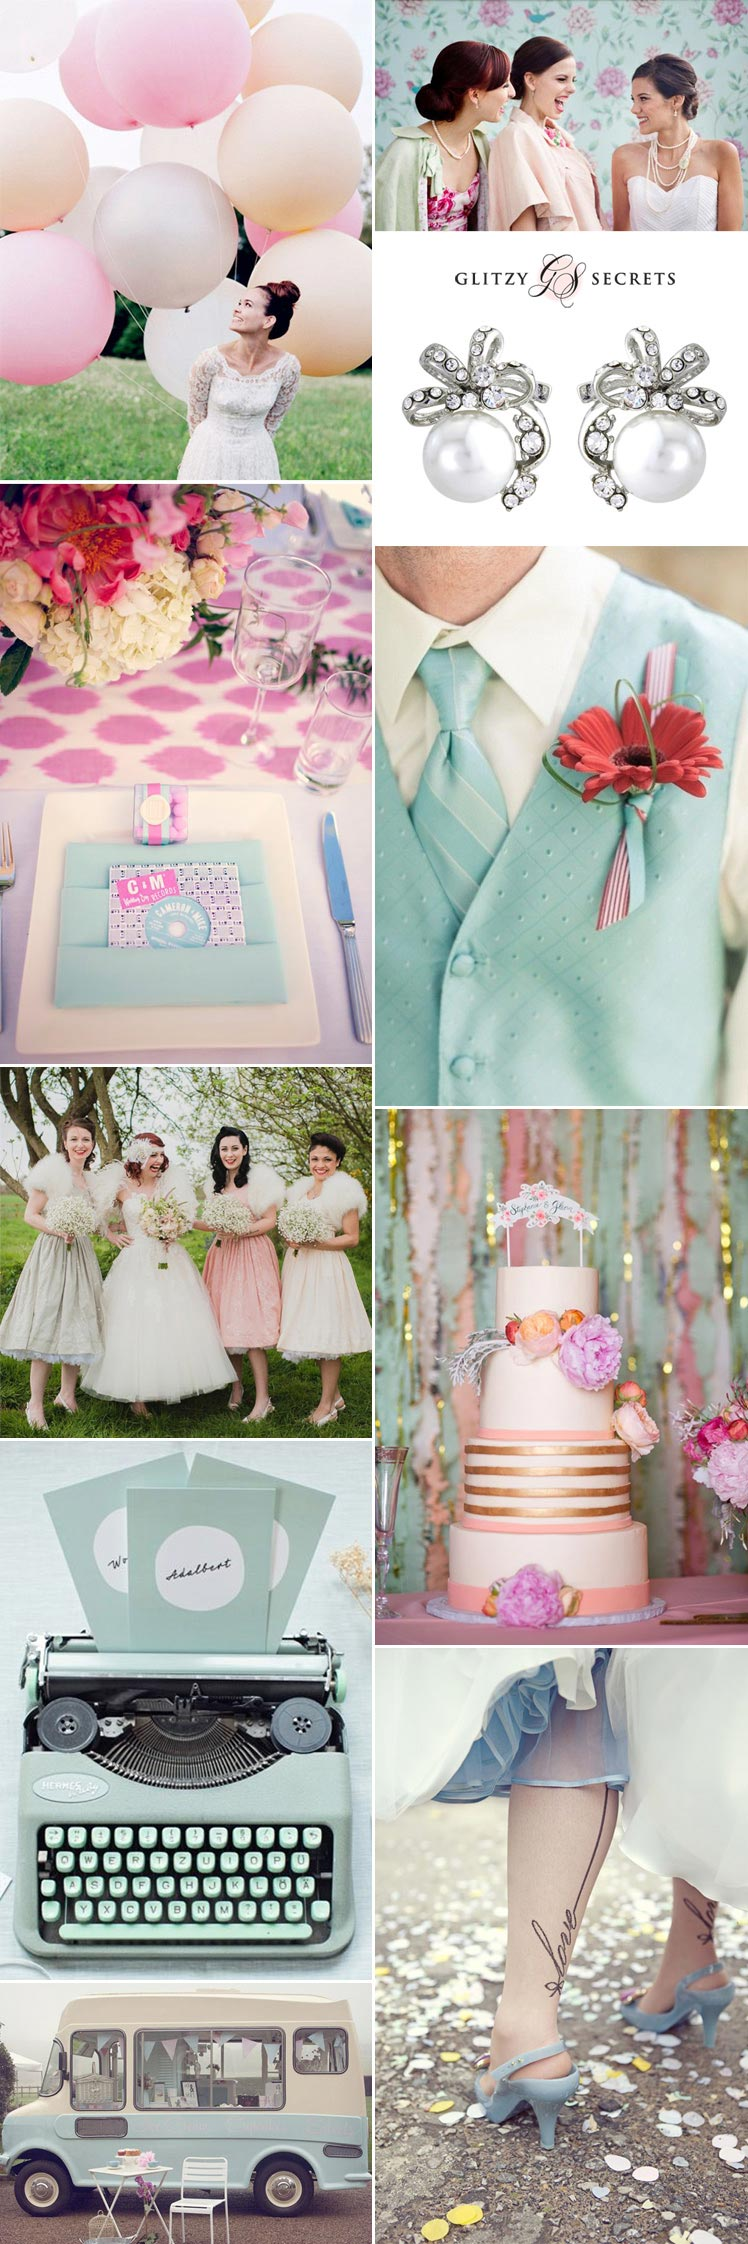 1950s pastel and petticoats wedding theme inspiration